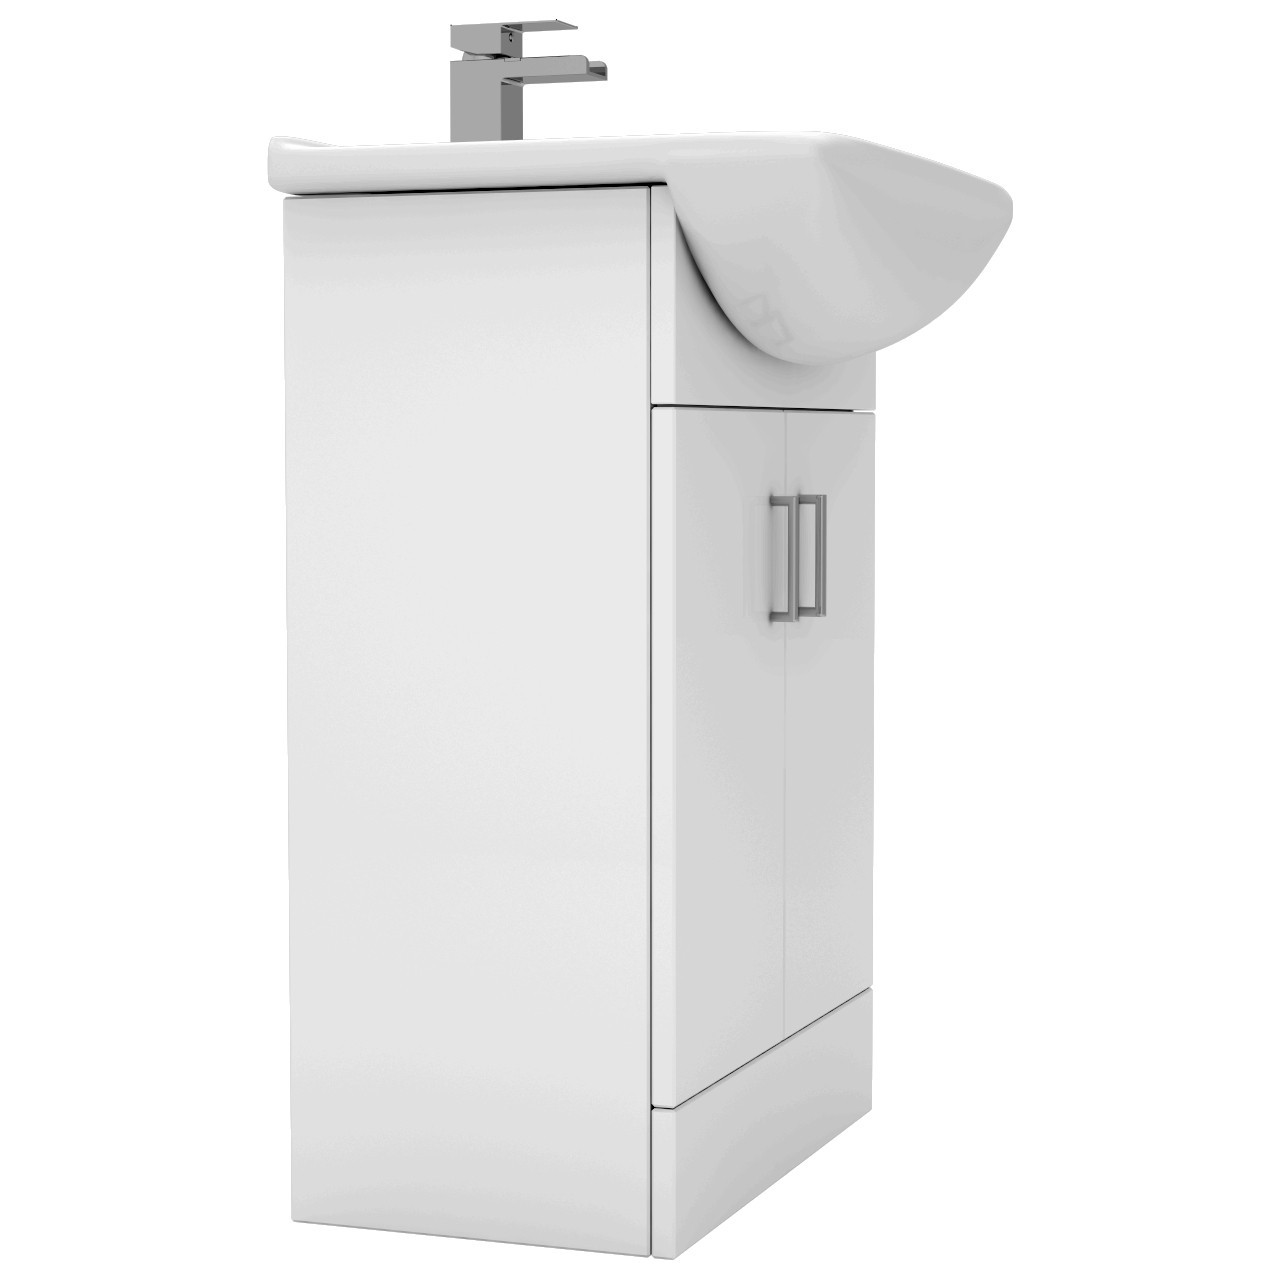 Modena 550mm Vanity Unit Including Basin with 1 Tap Hole